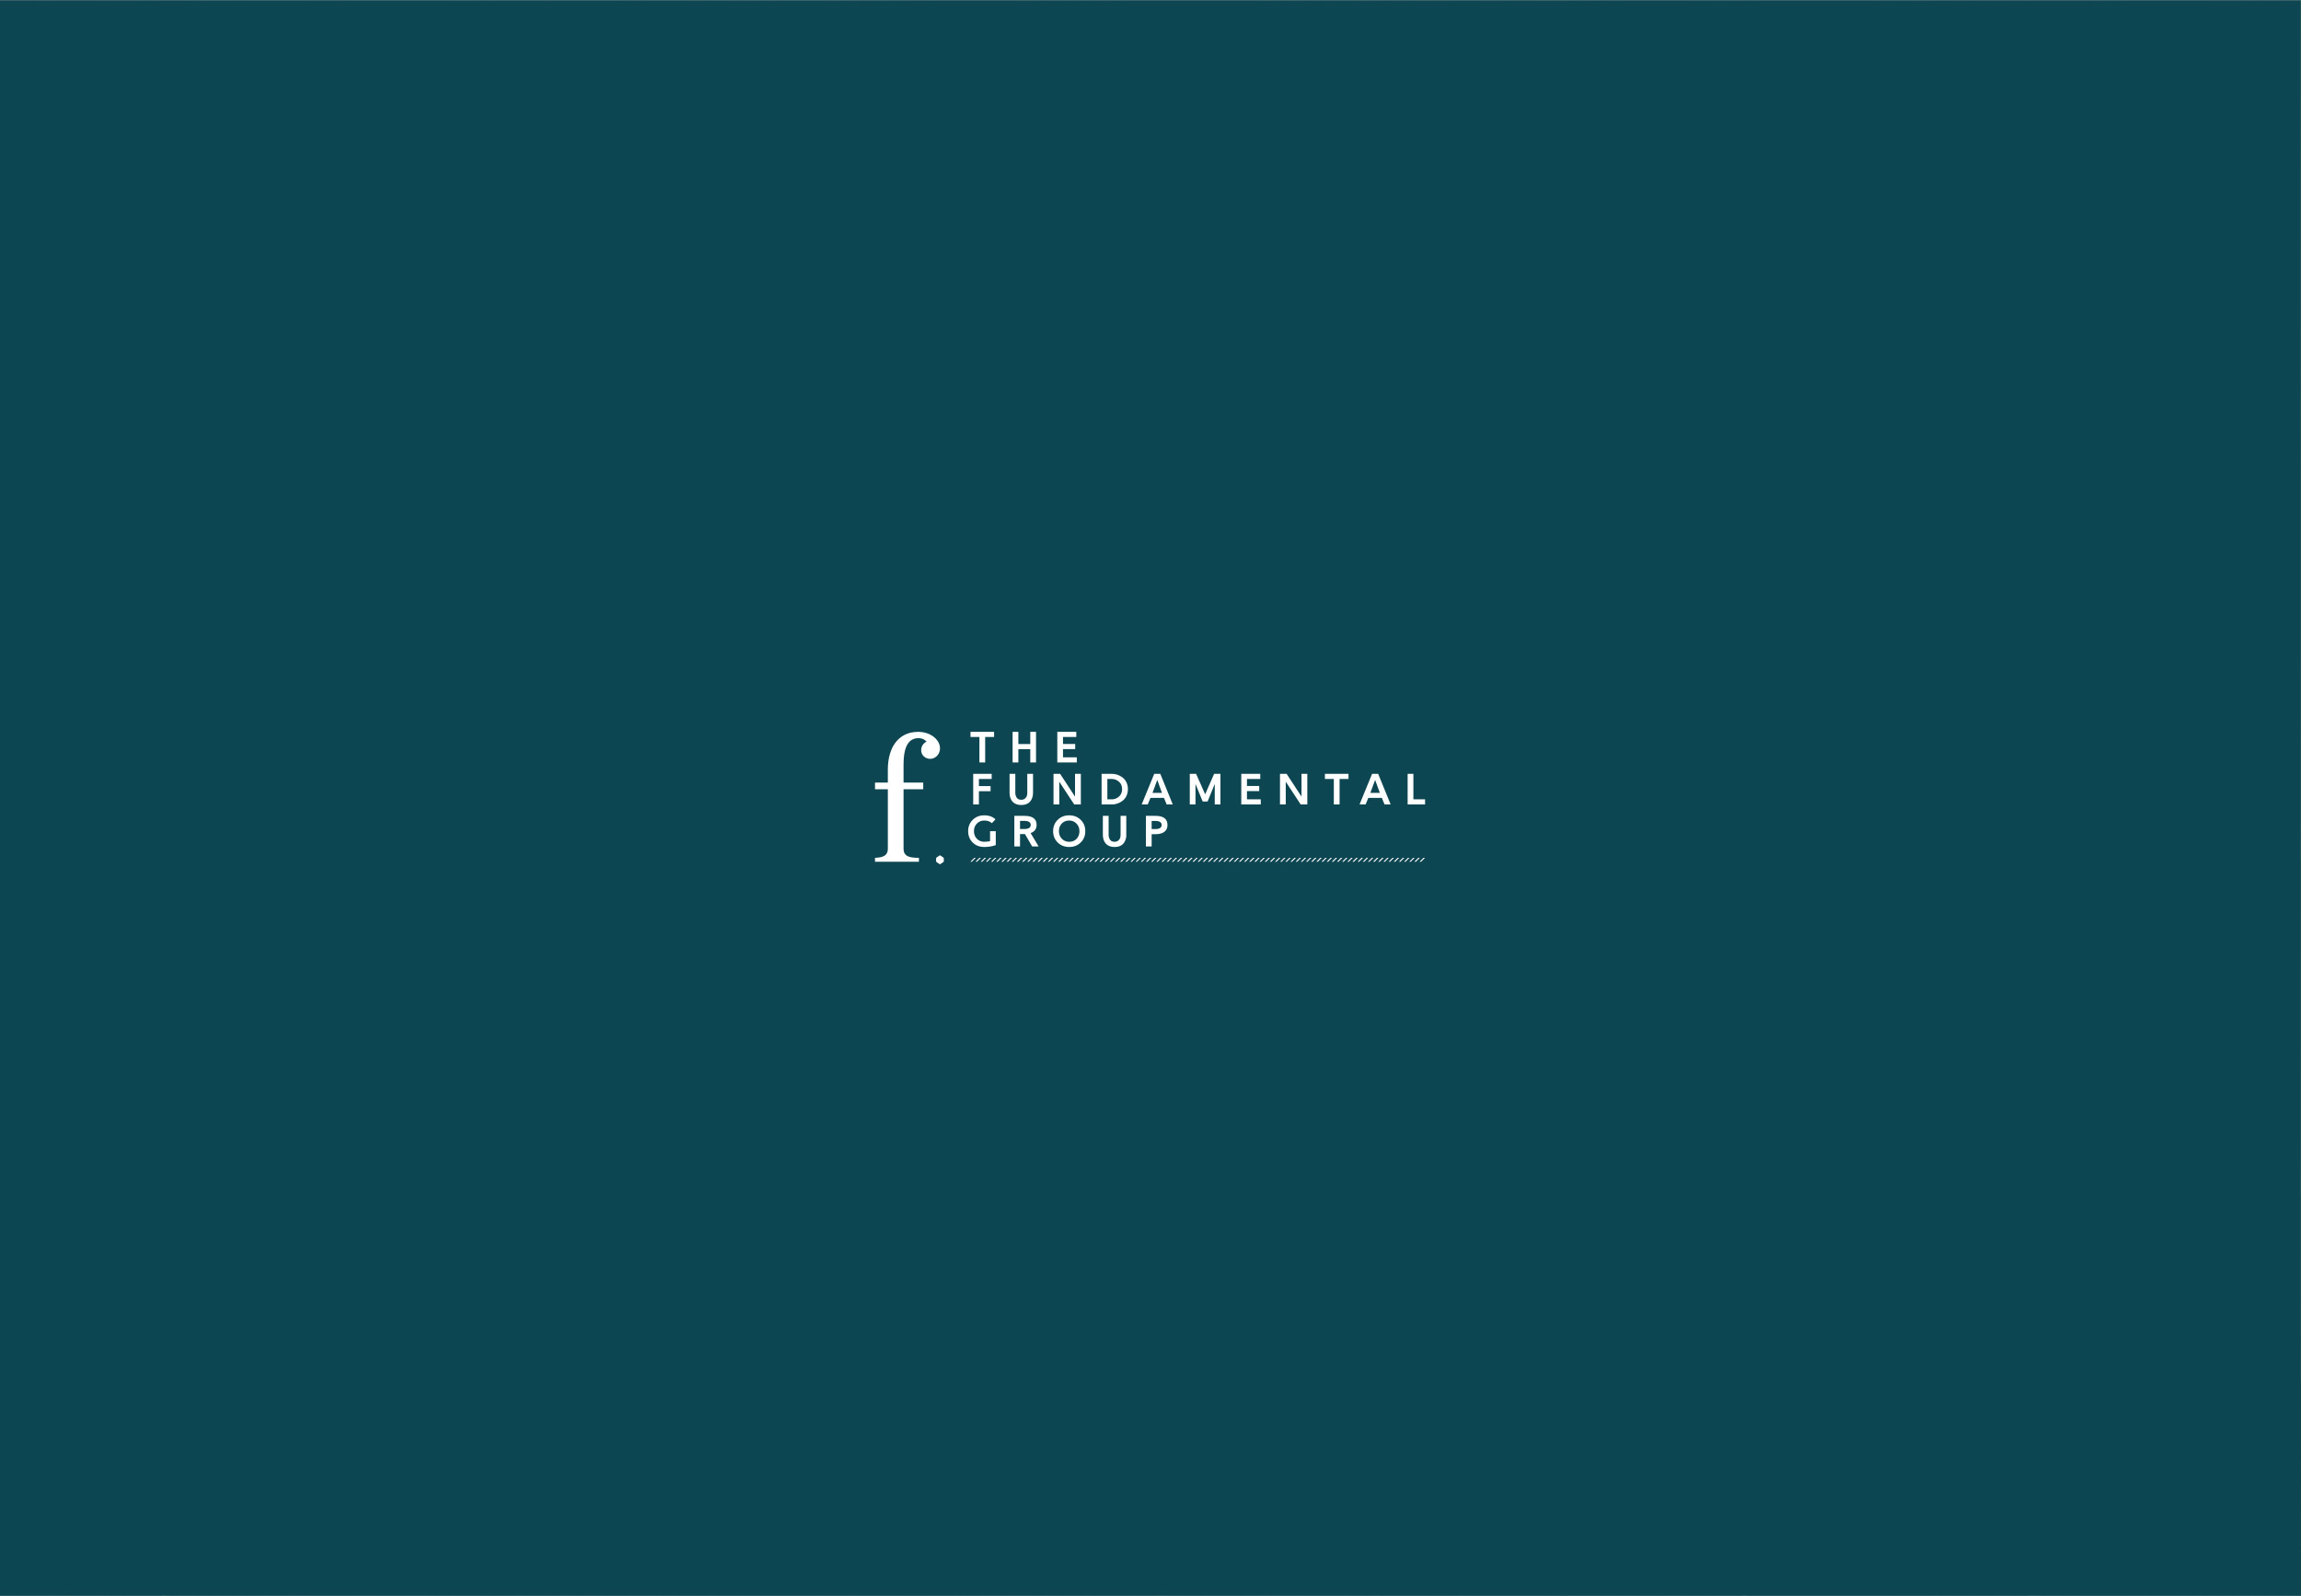 Brand board for The Fundamental Group wealth advisors, logo design and brand identity by Ditto Creative, branding agency Kent